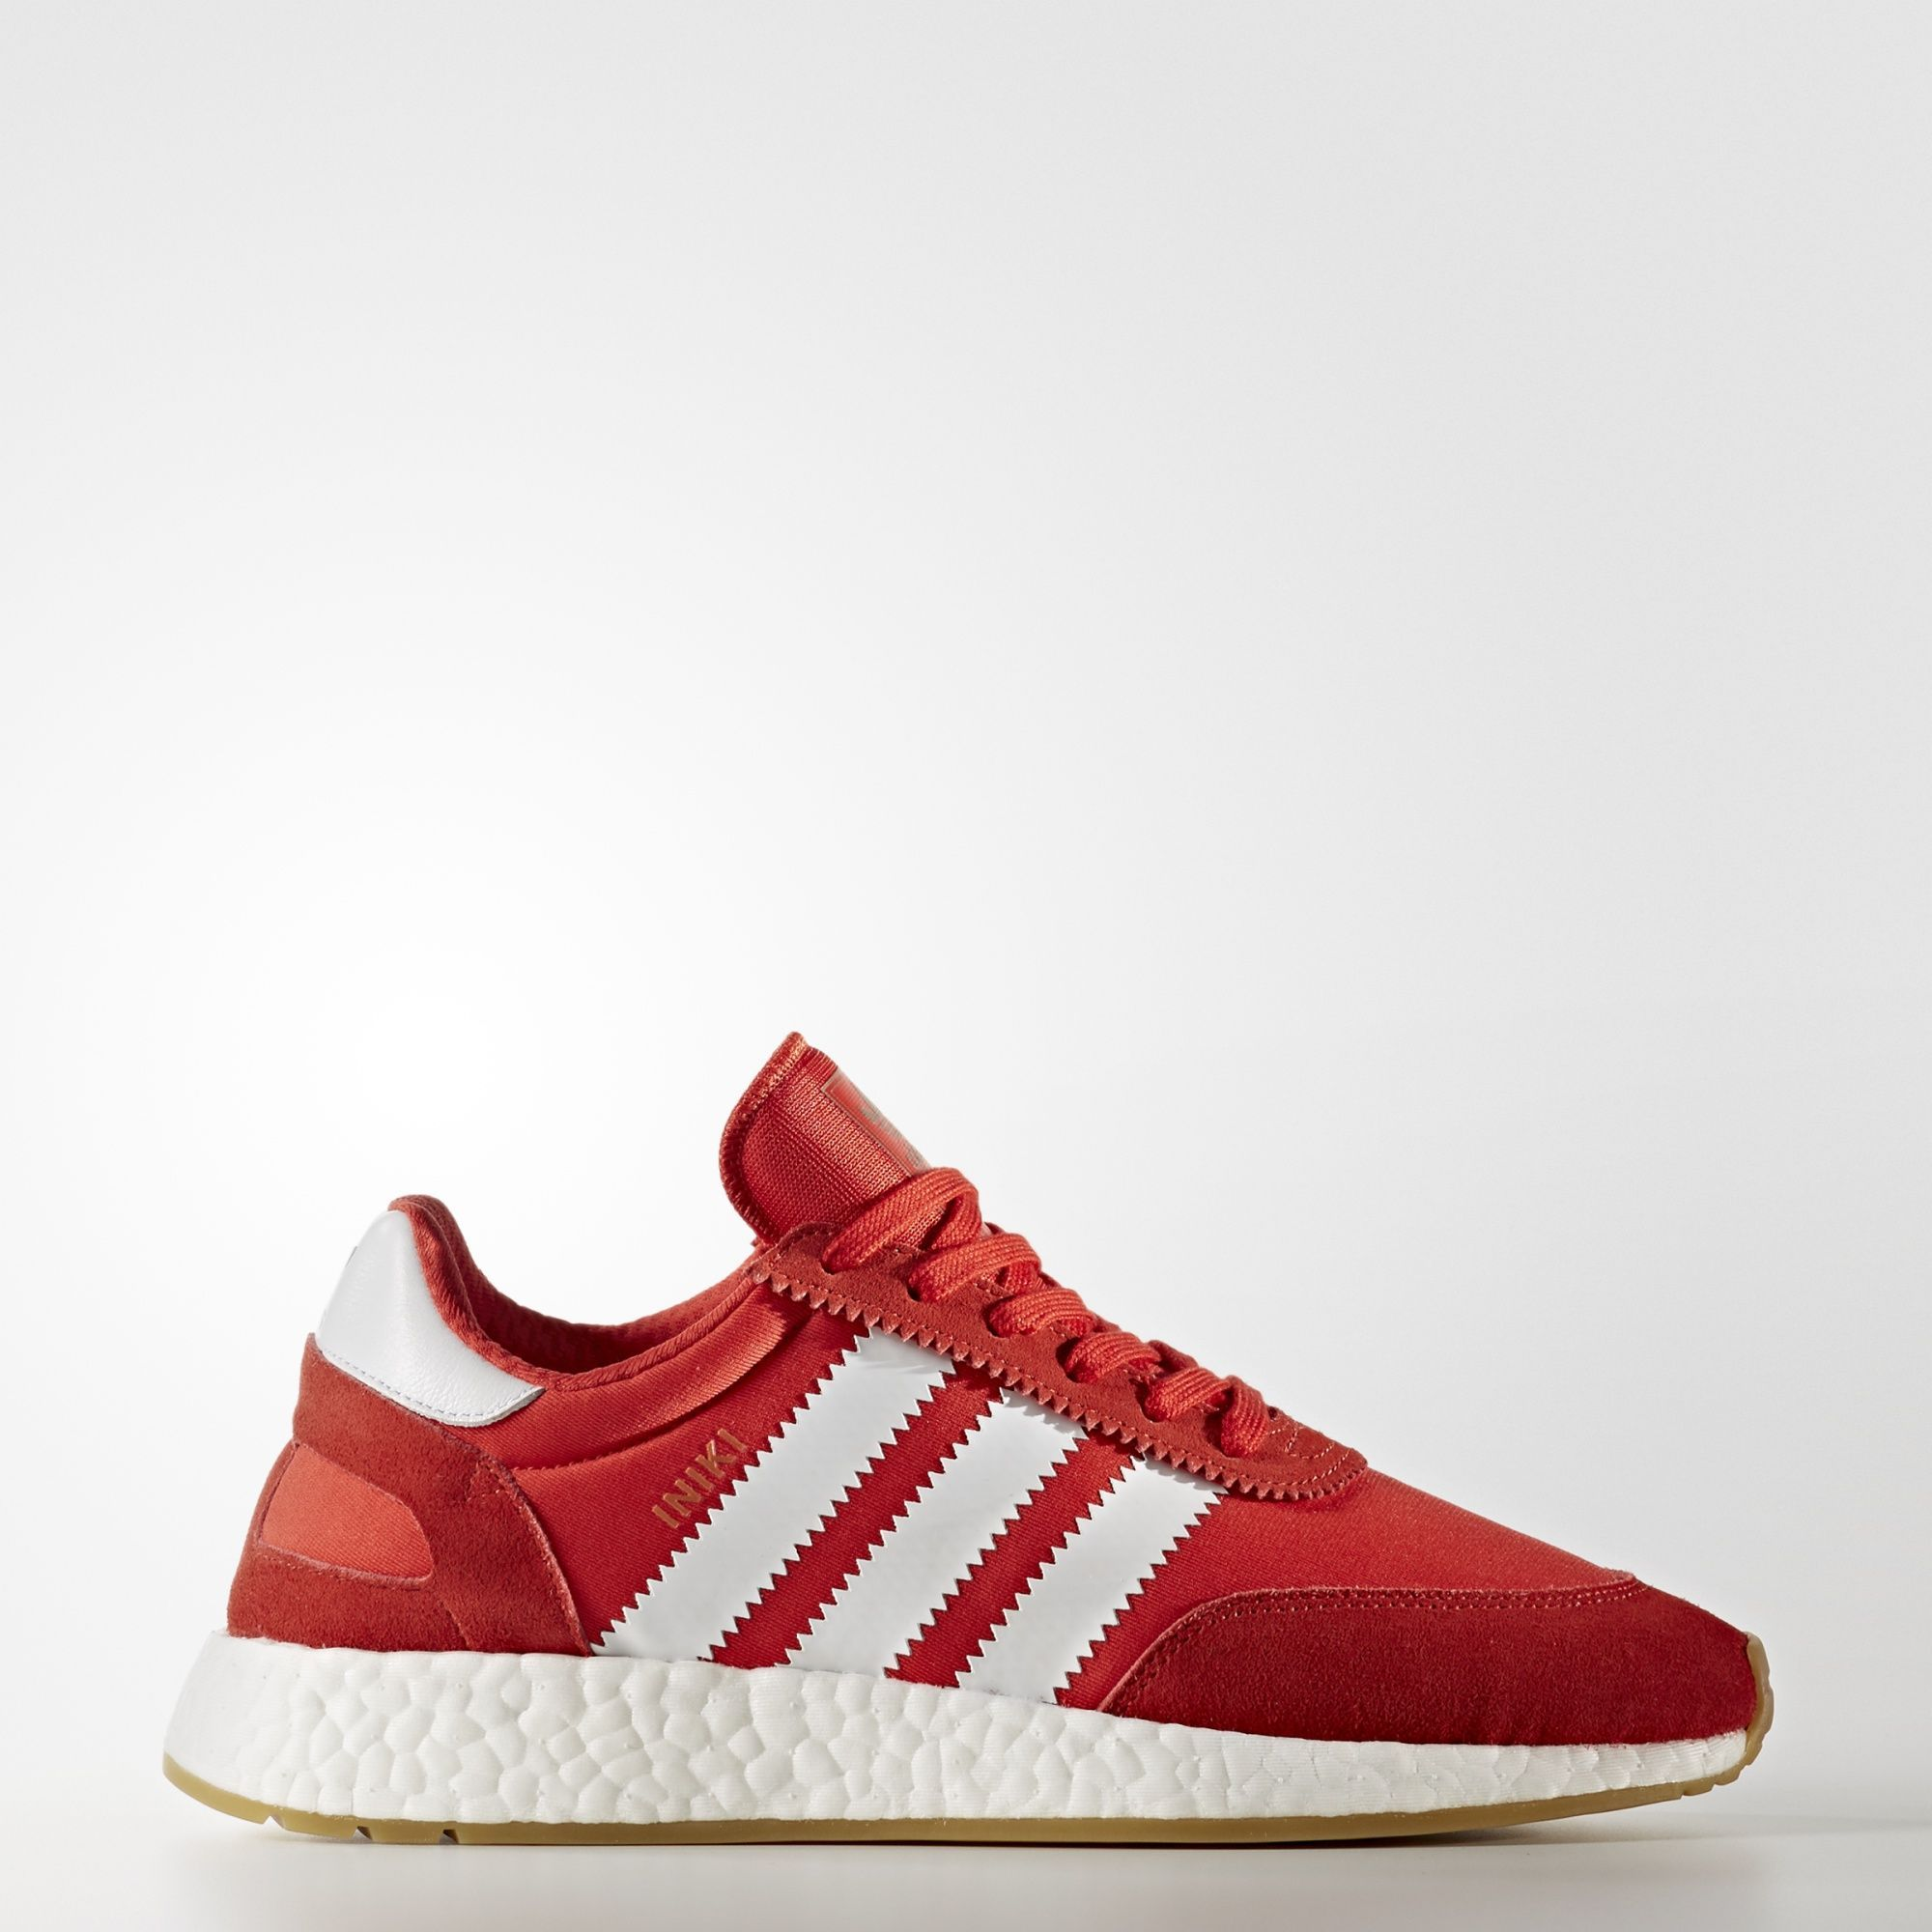 adidas Iniki Runner Shoes | Style in 2019 | Adidas iniki